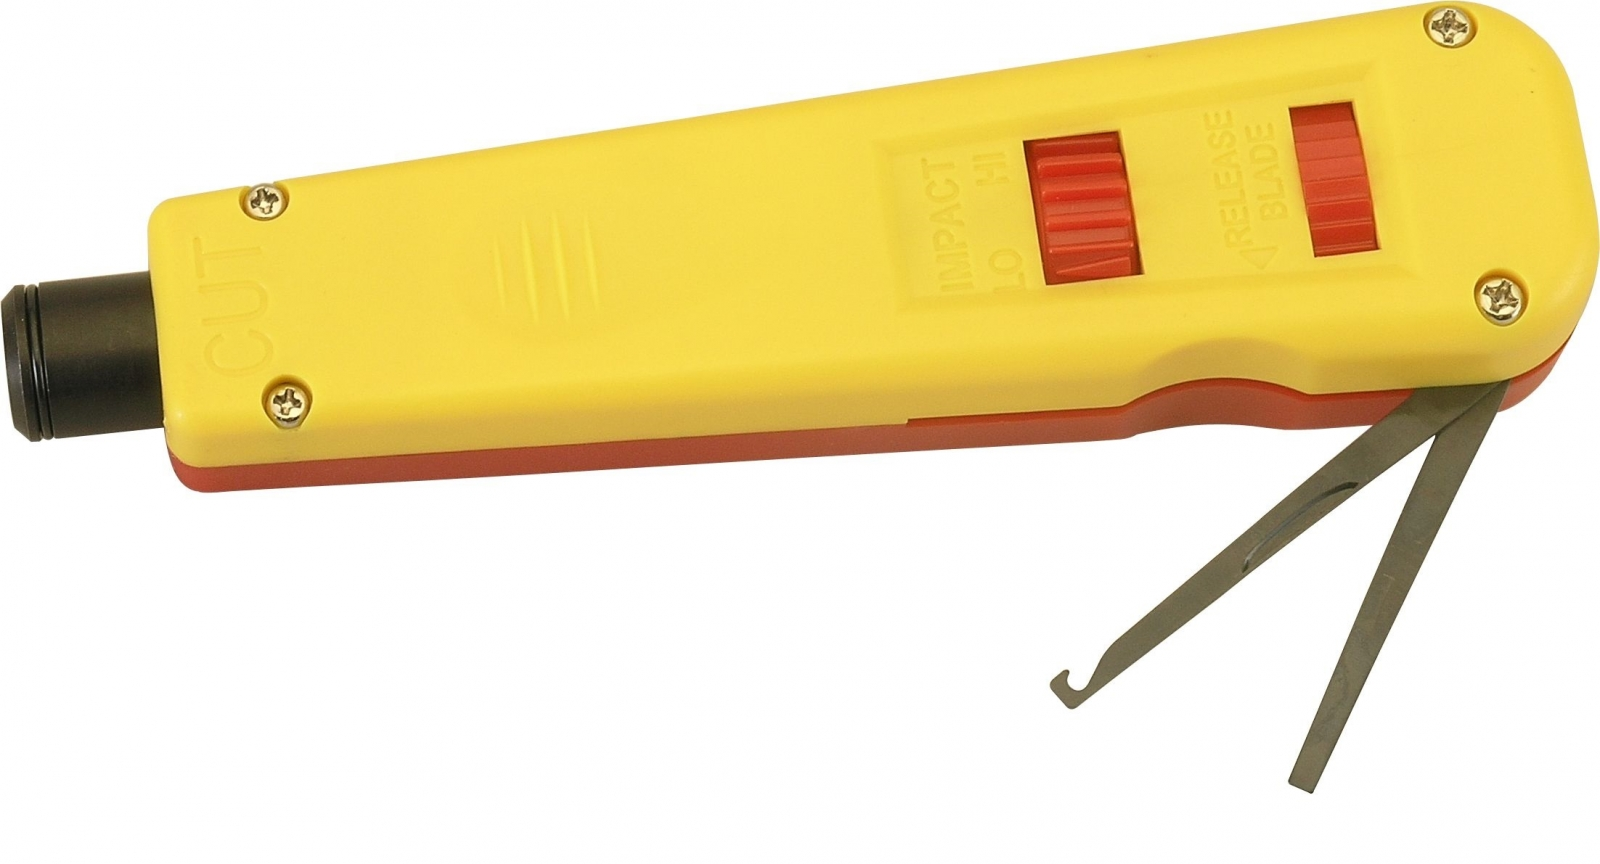 Kuwes Punch Down Tool 110/88 with Hook & Extractor